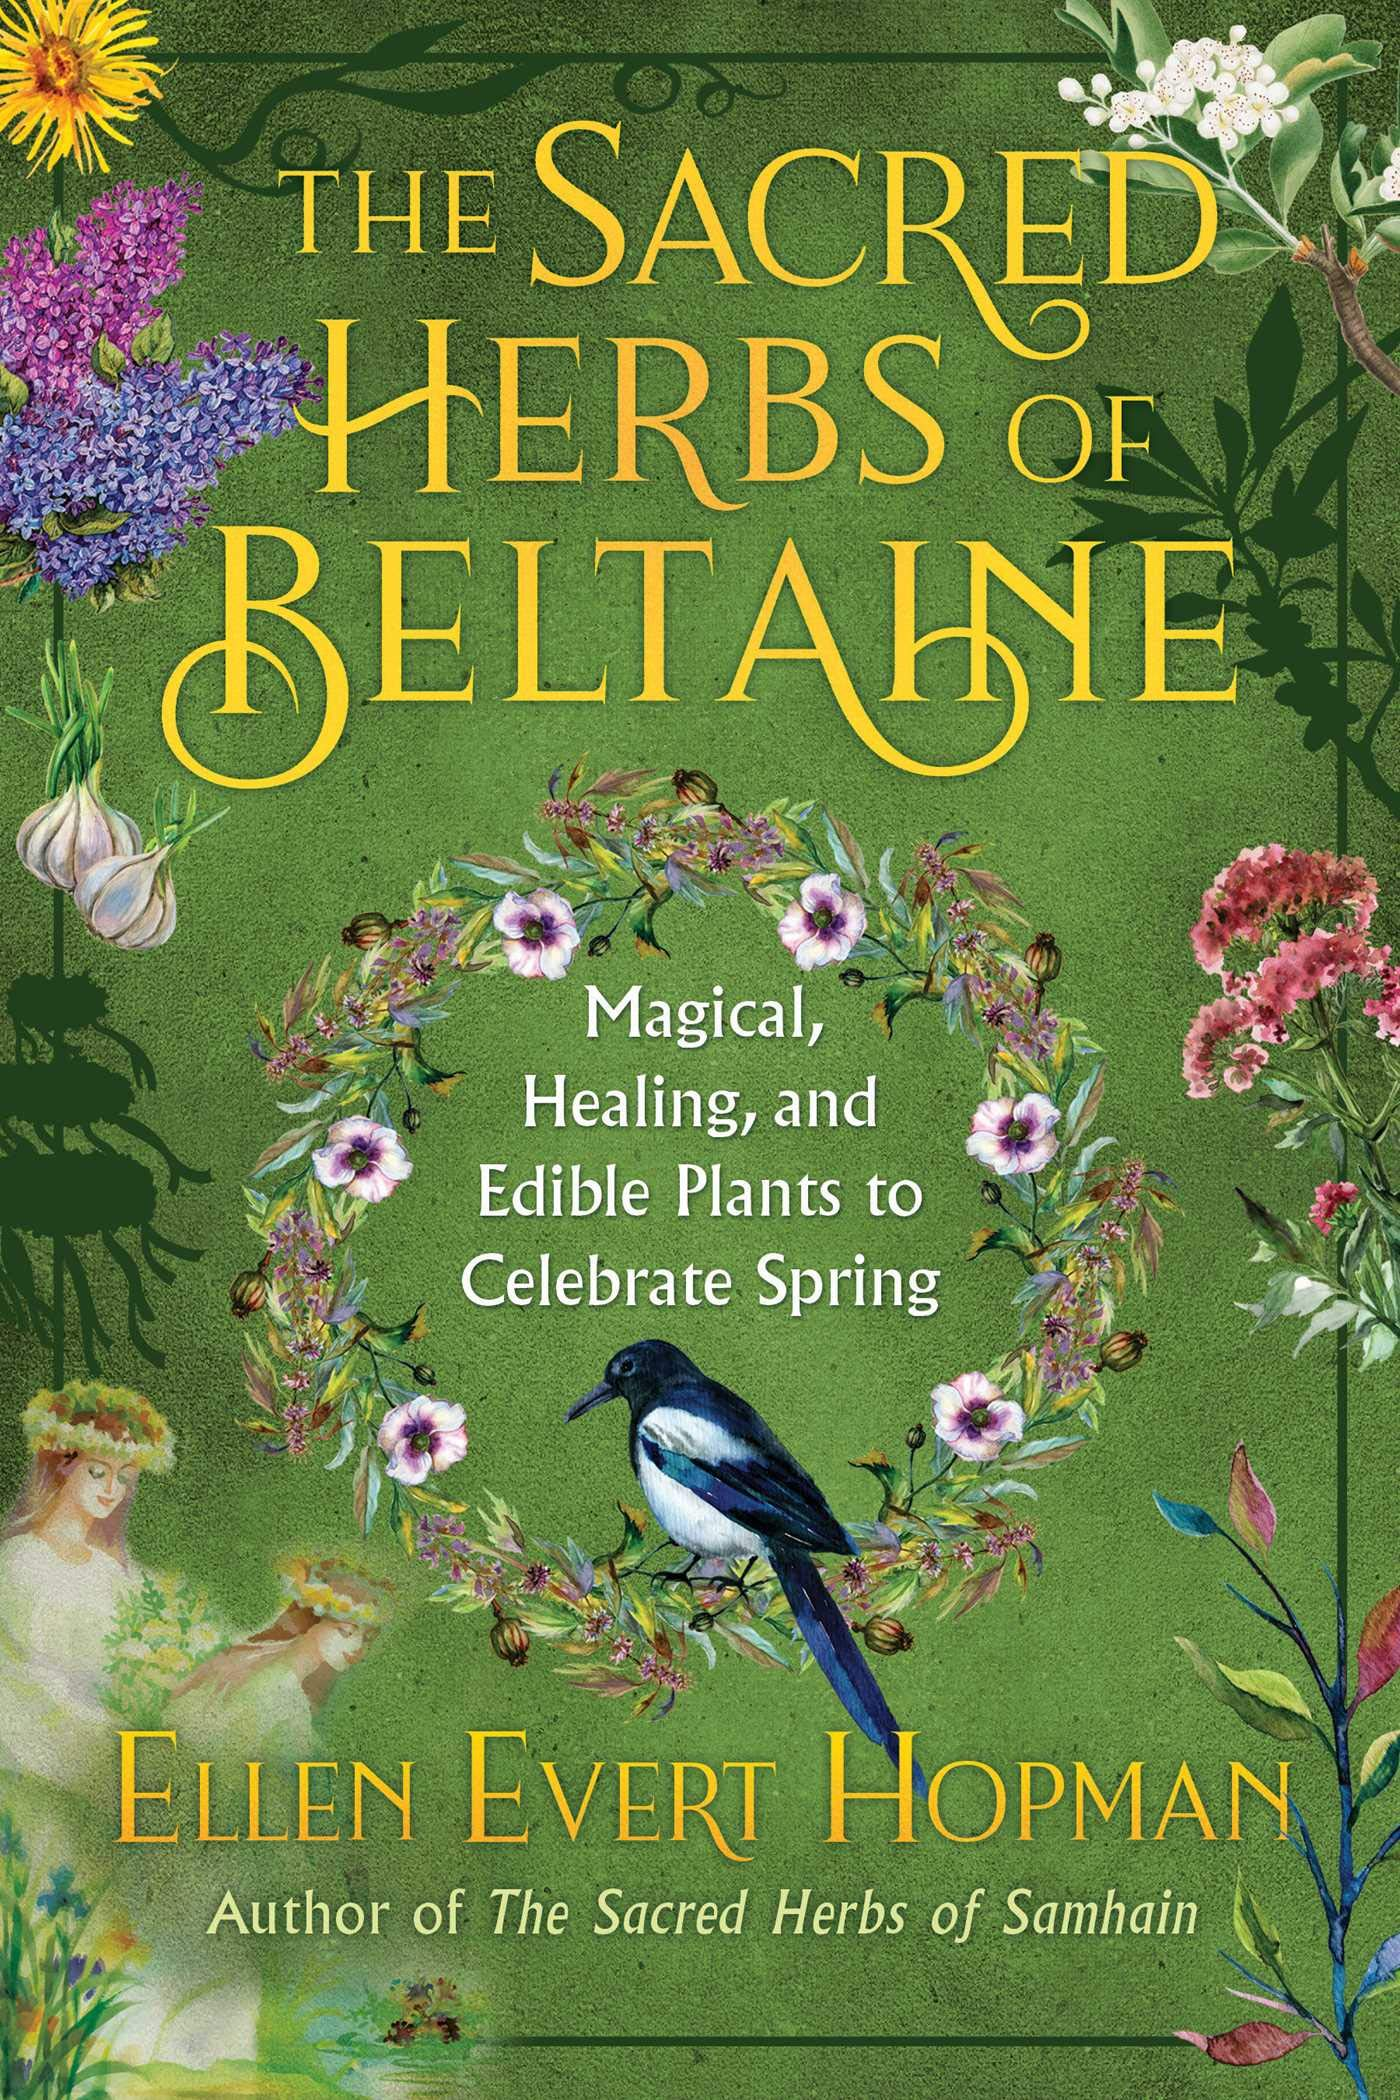 The Sacred Herbs of Beltaine: Magical, Healing, and Edible Plants to Celebrate Spring by Destiny Books